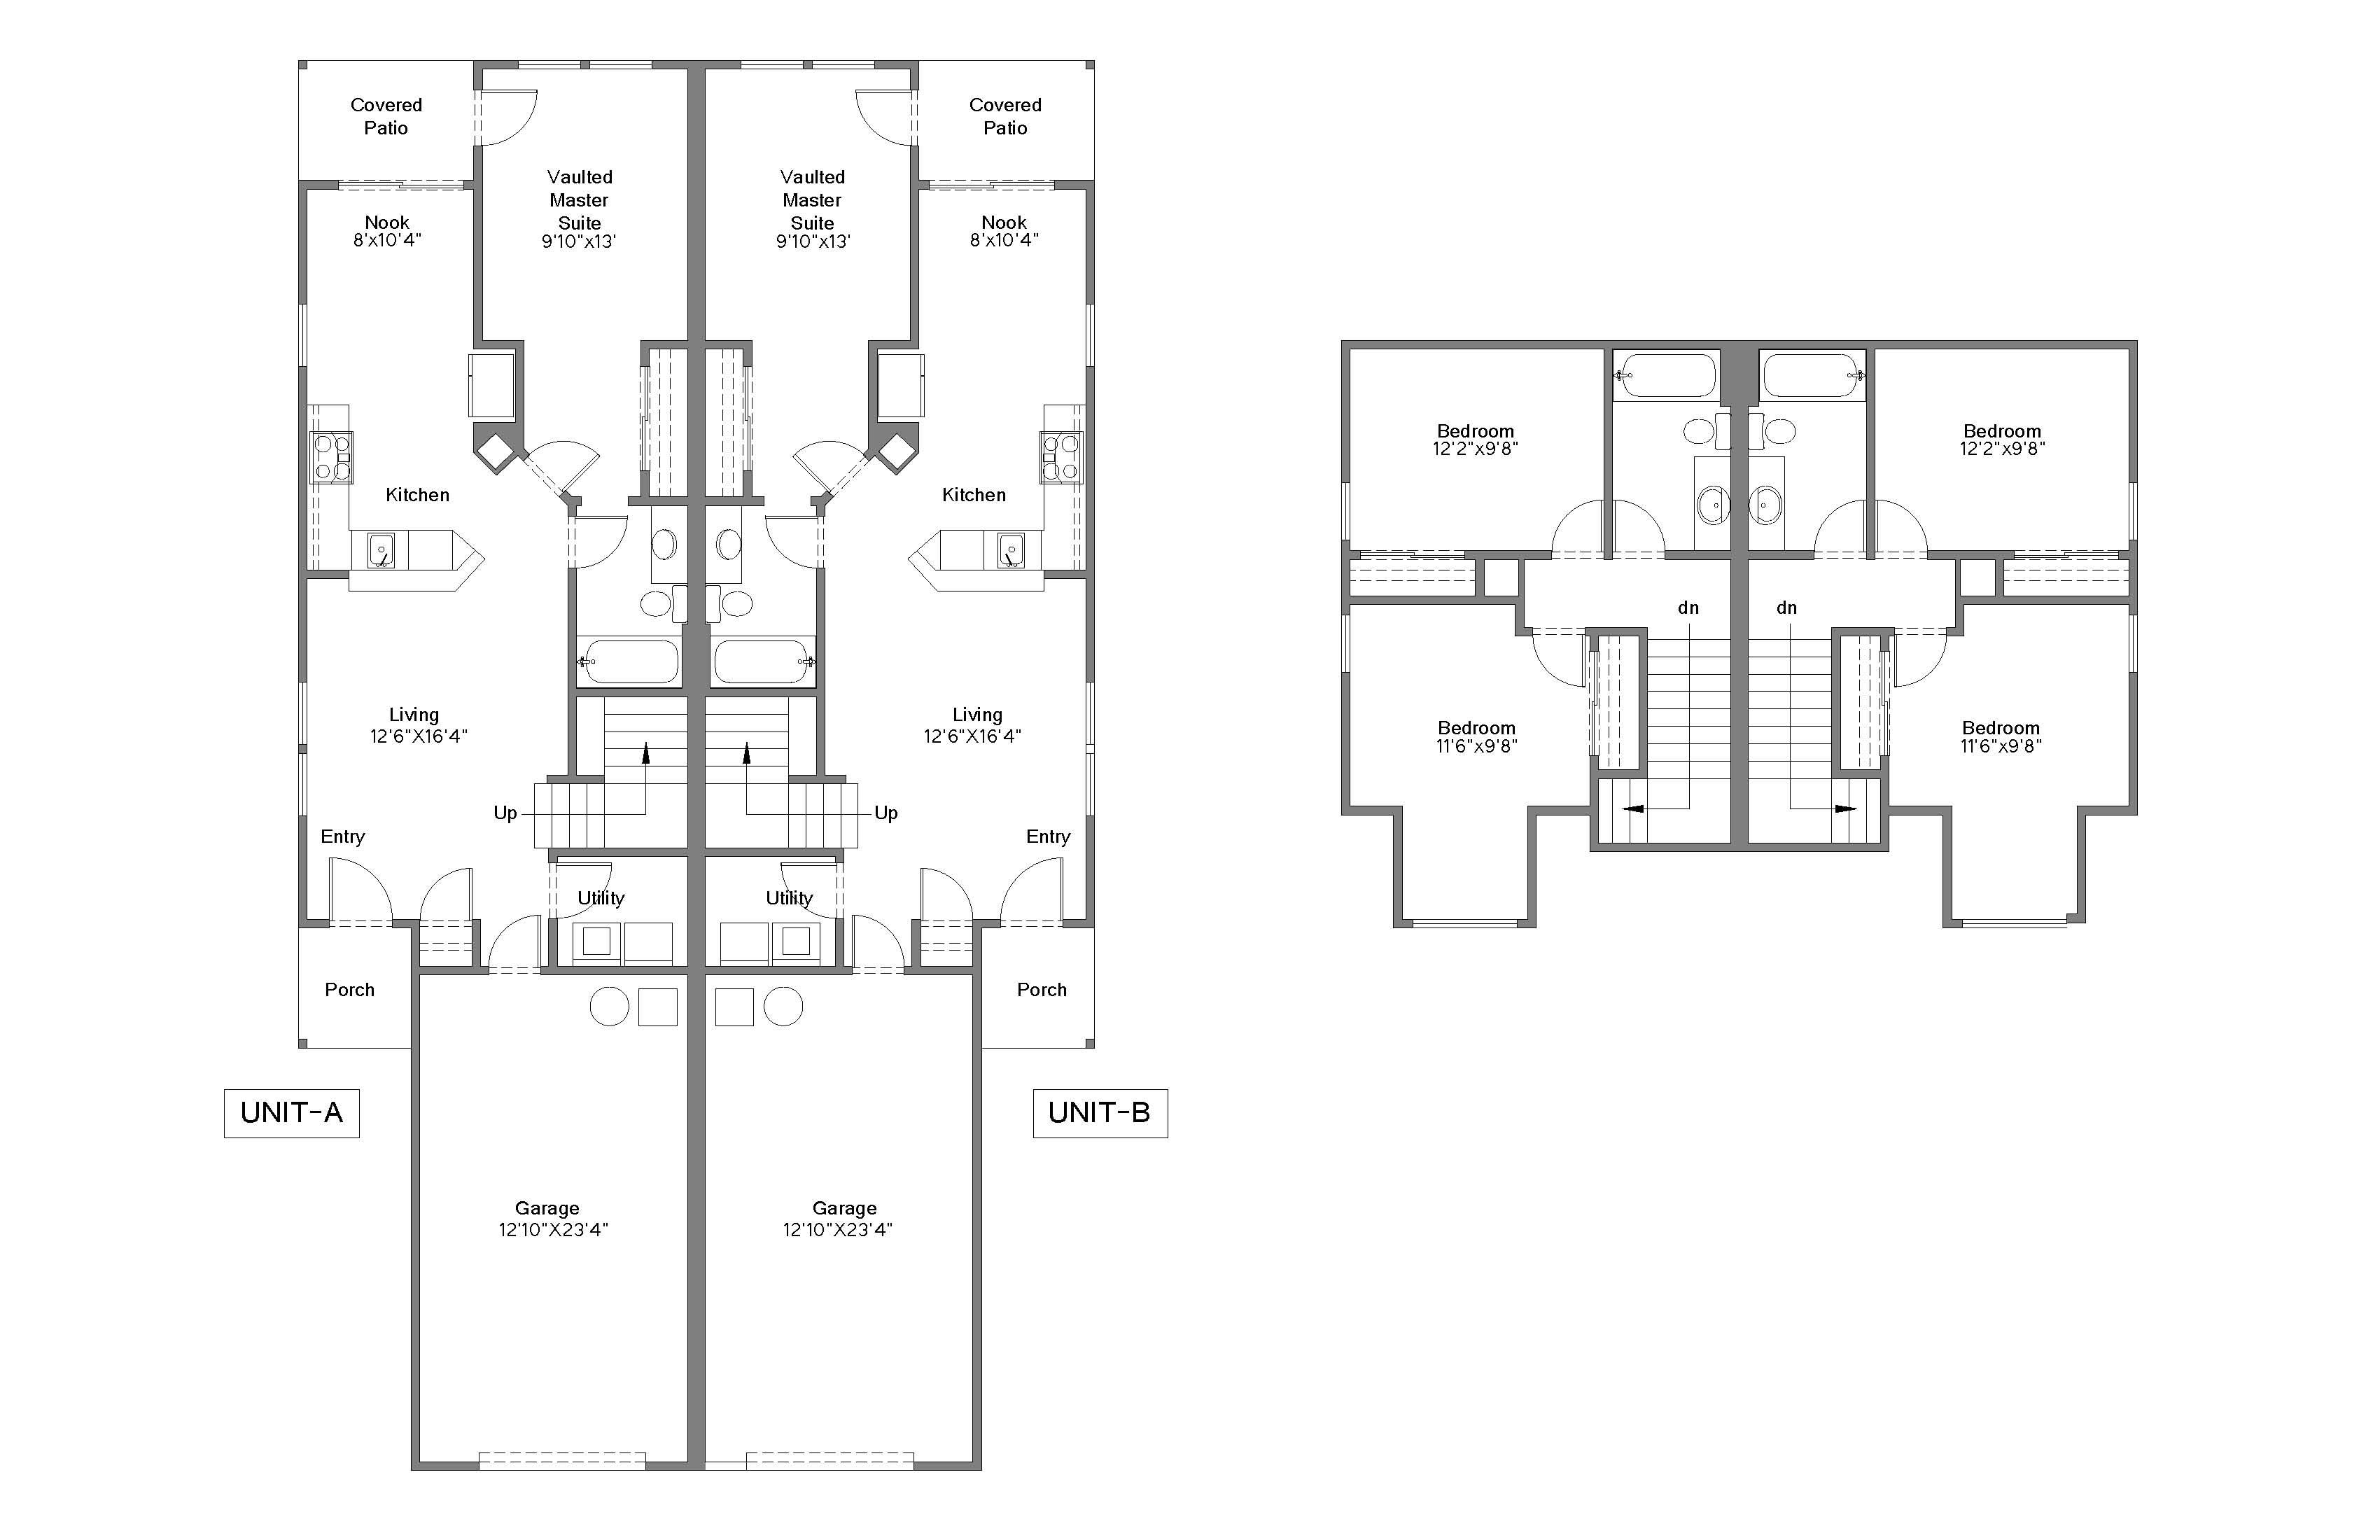 Architectural floor plan floor plan with autocad drawings House cad drawings